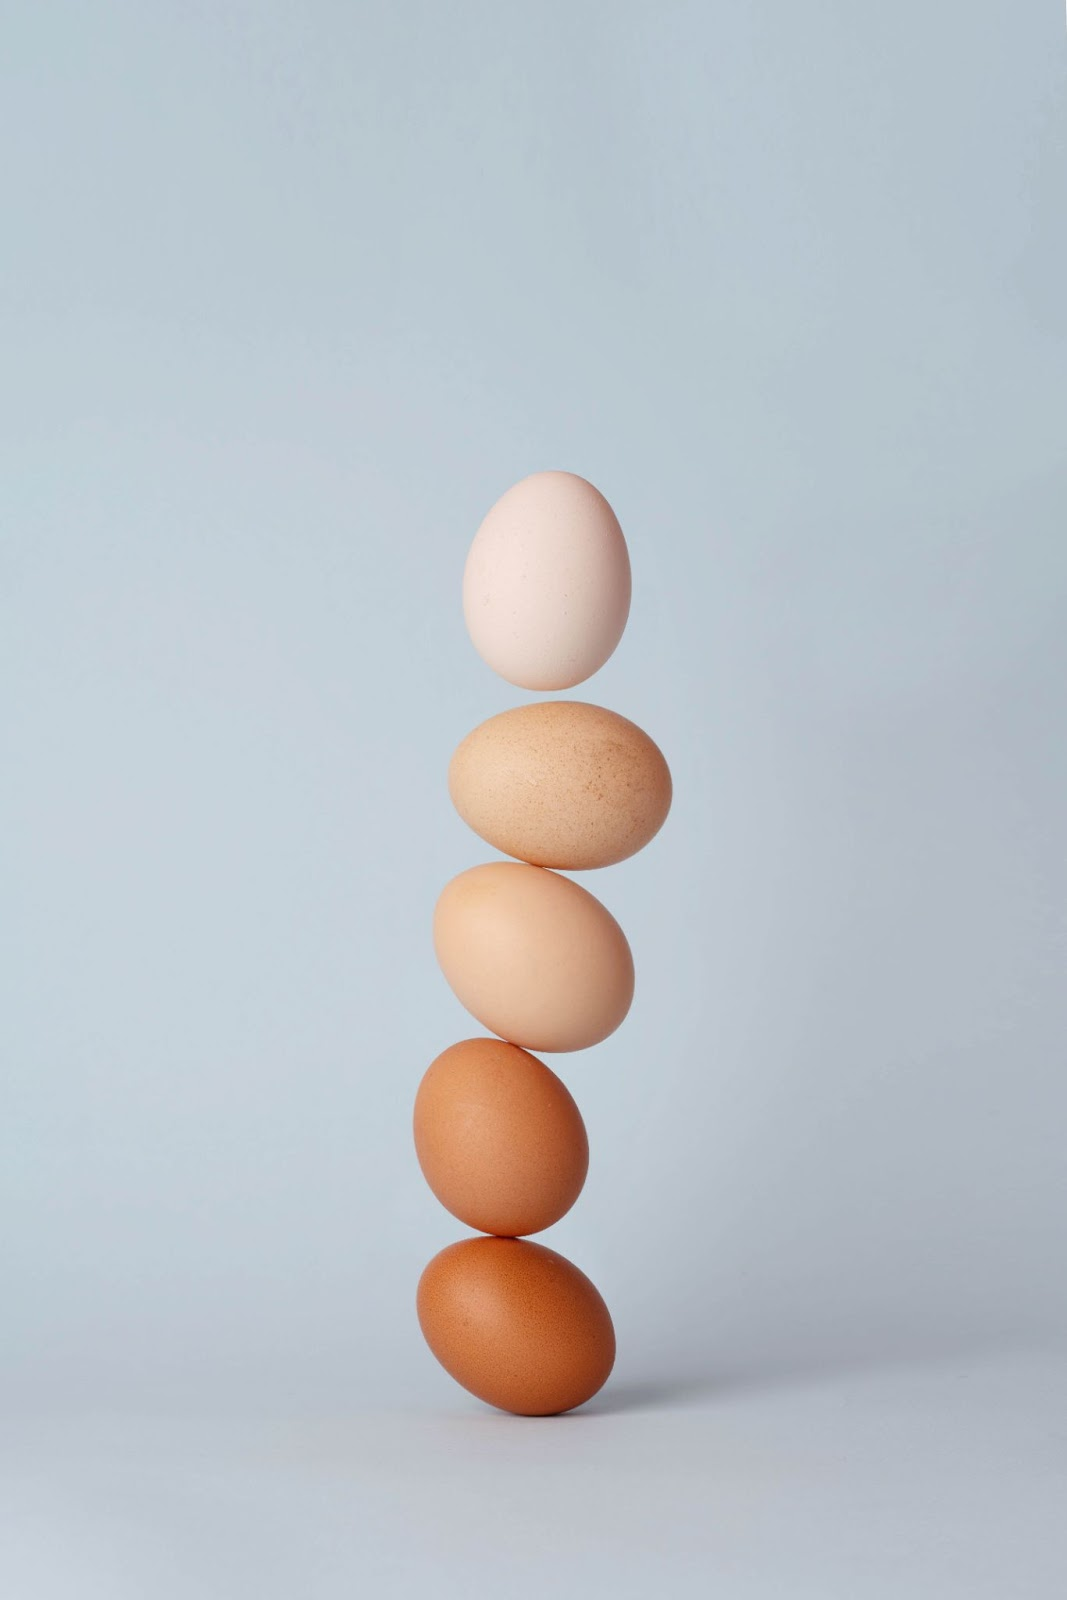 It's all about balance! A tower of eggs.